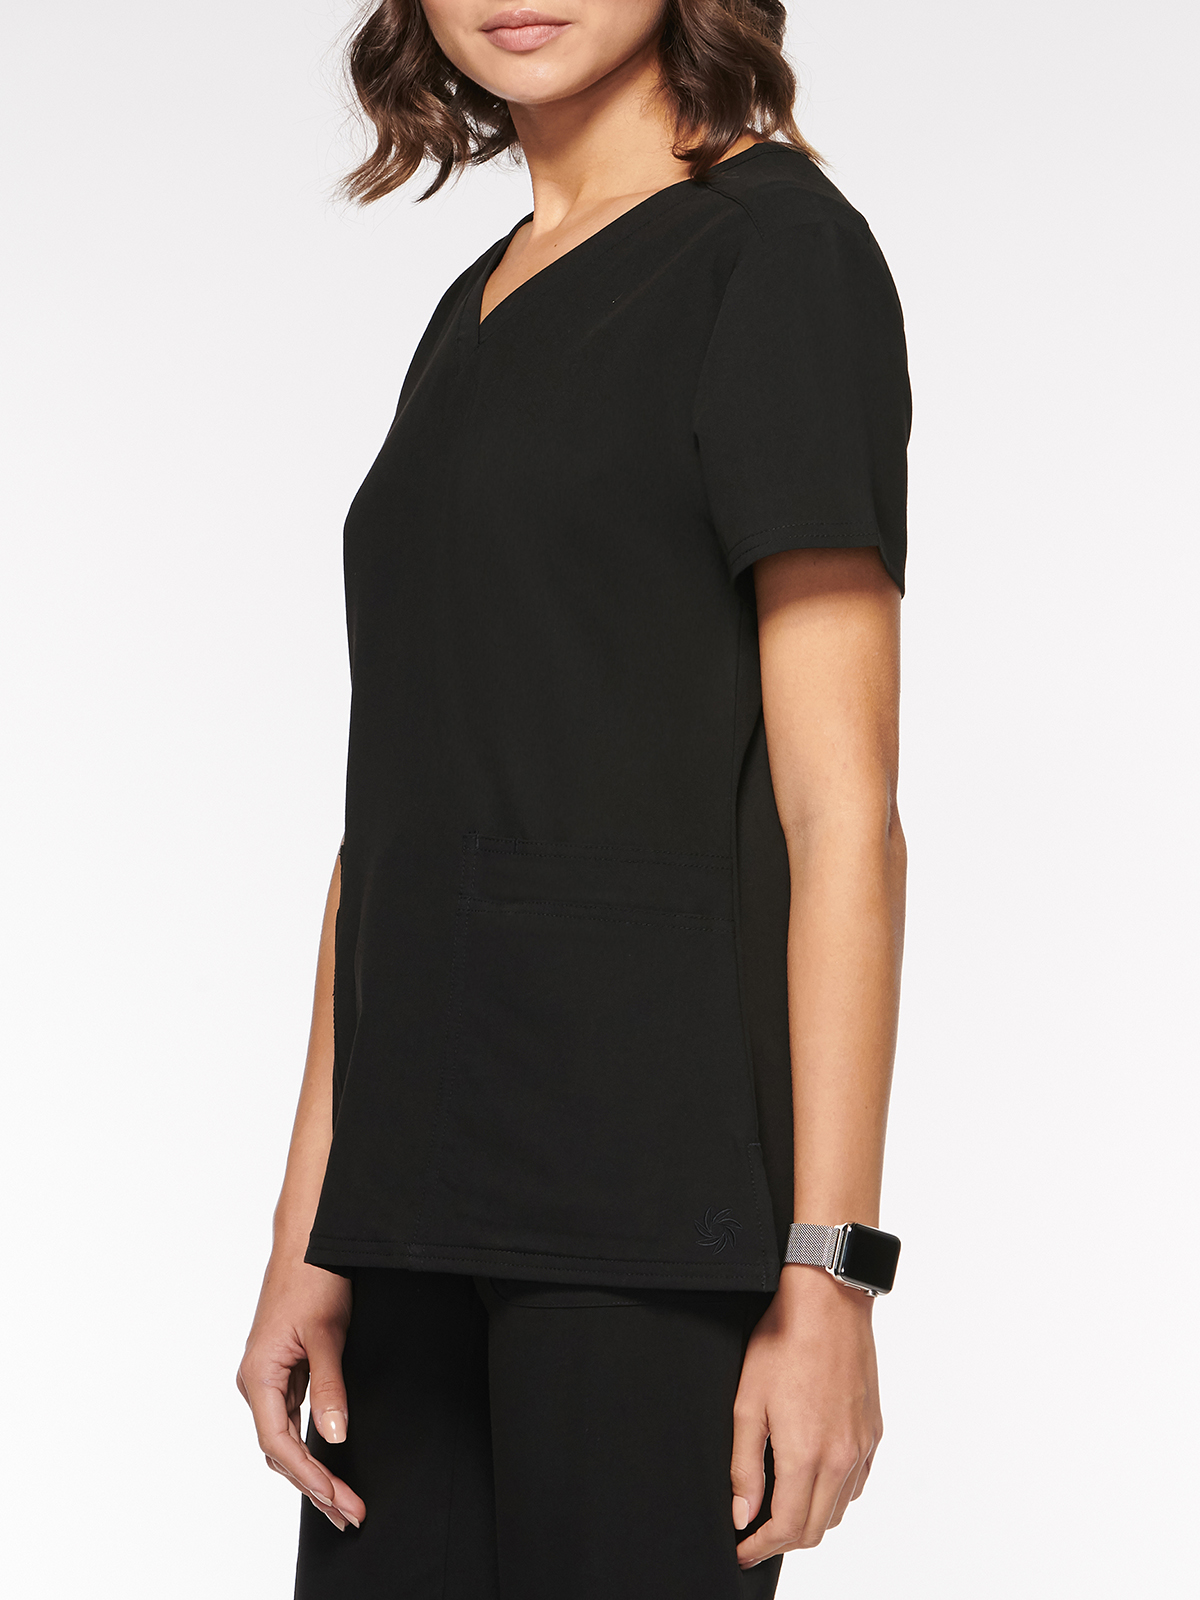 Womens Top Classic V-Neck with 6 Pockets